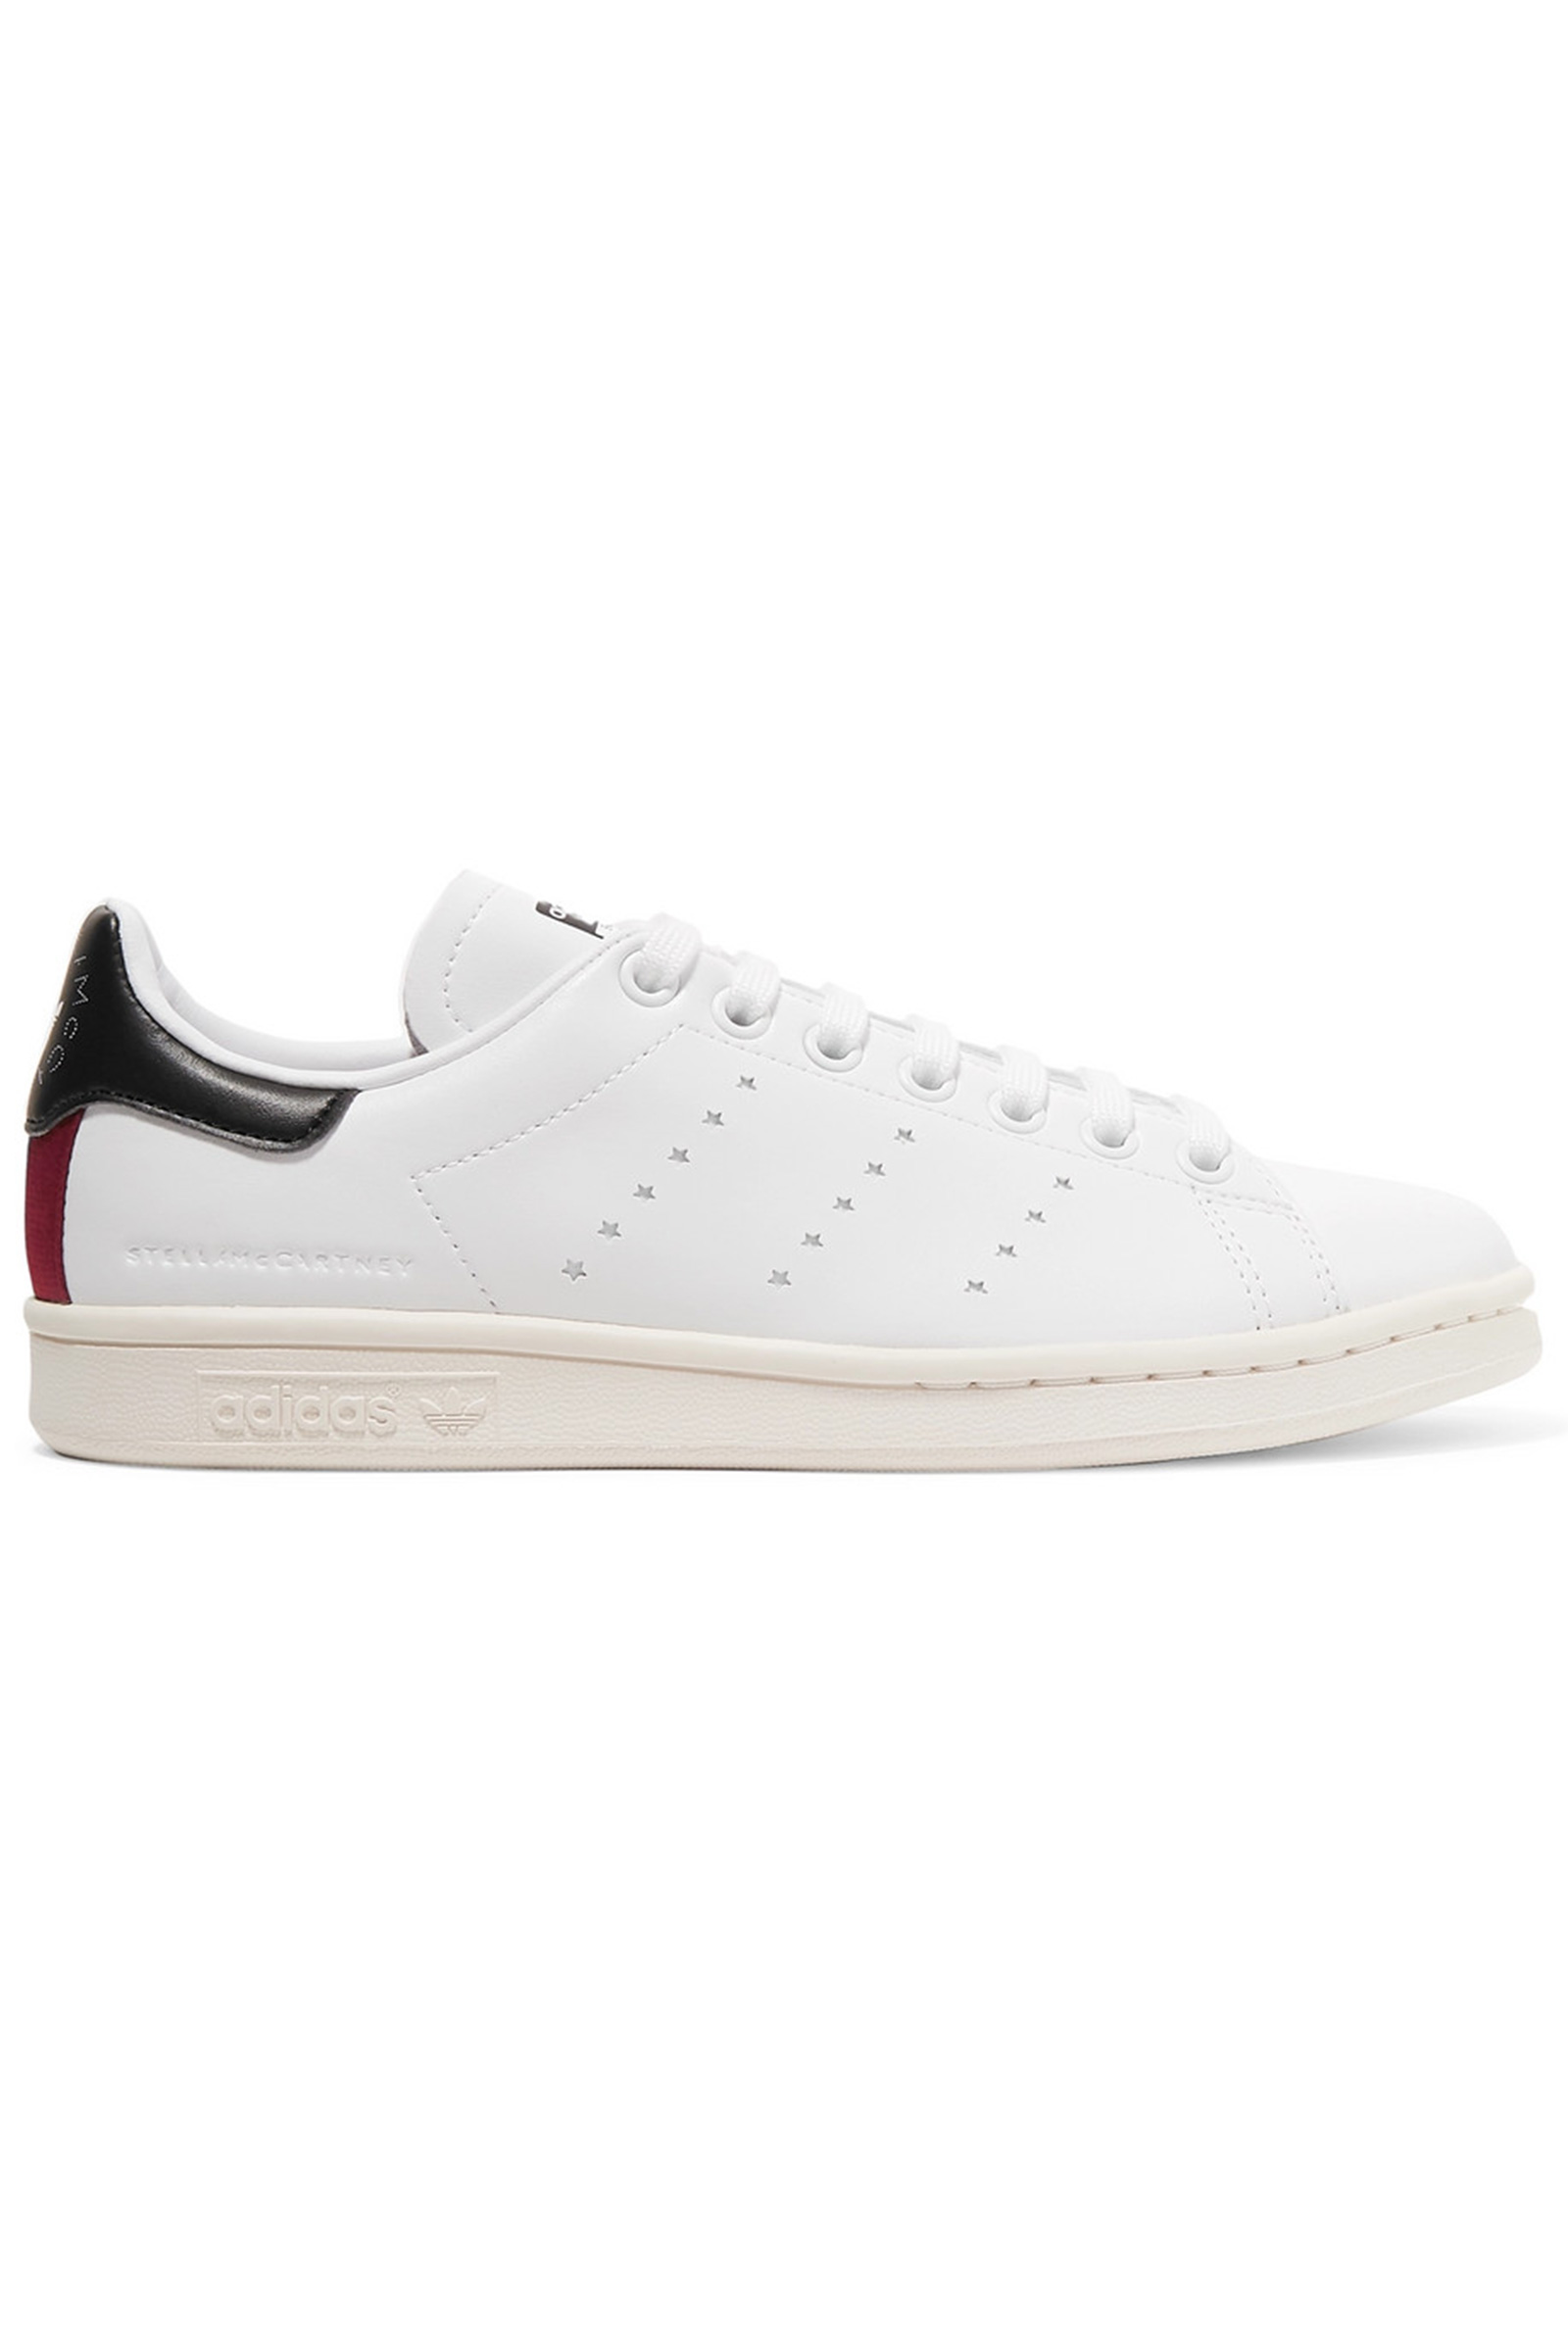 Click to Buy Stella-McCartney-Adidas-Trainers